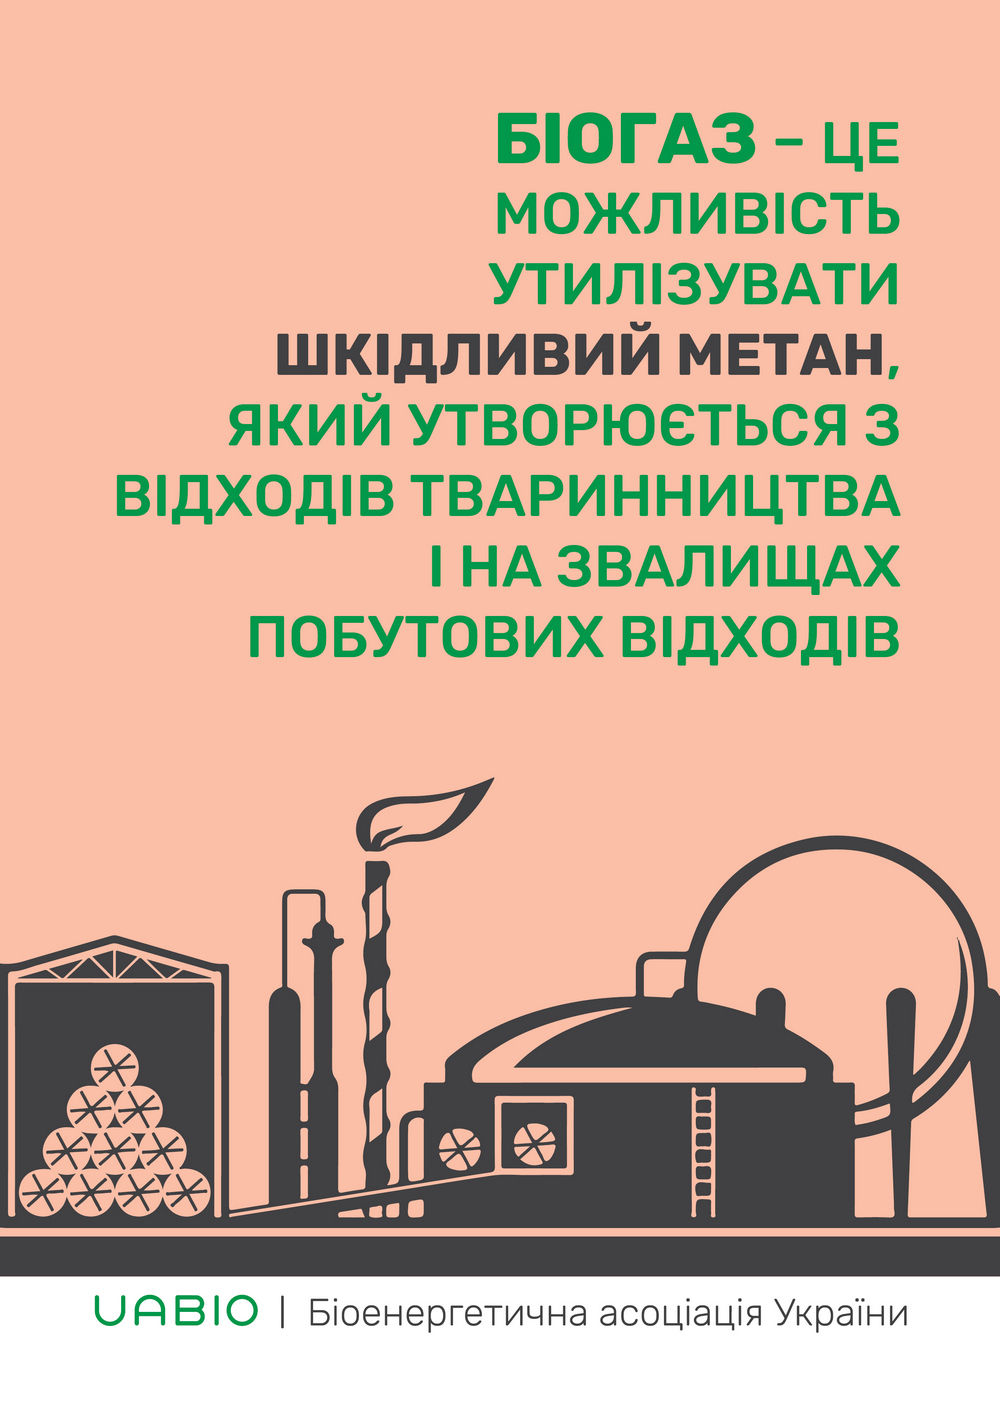 ukrainian-bioenergy-day-campaign-7.jpg